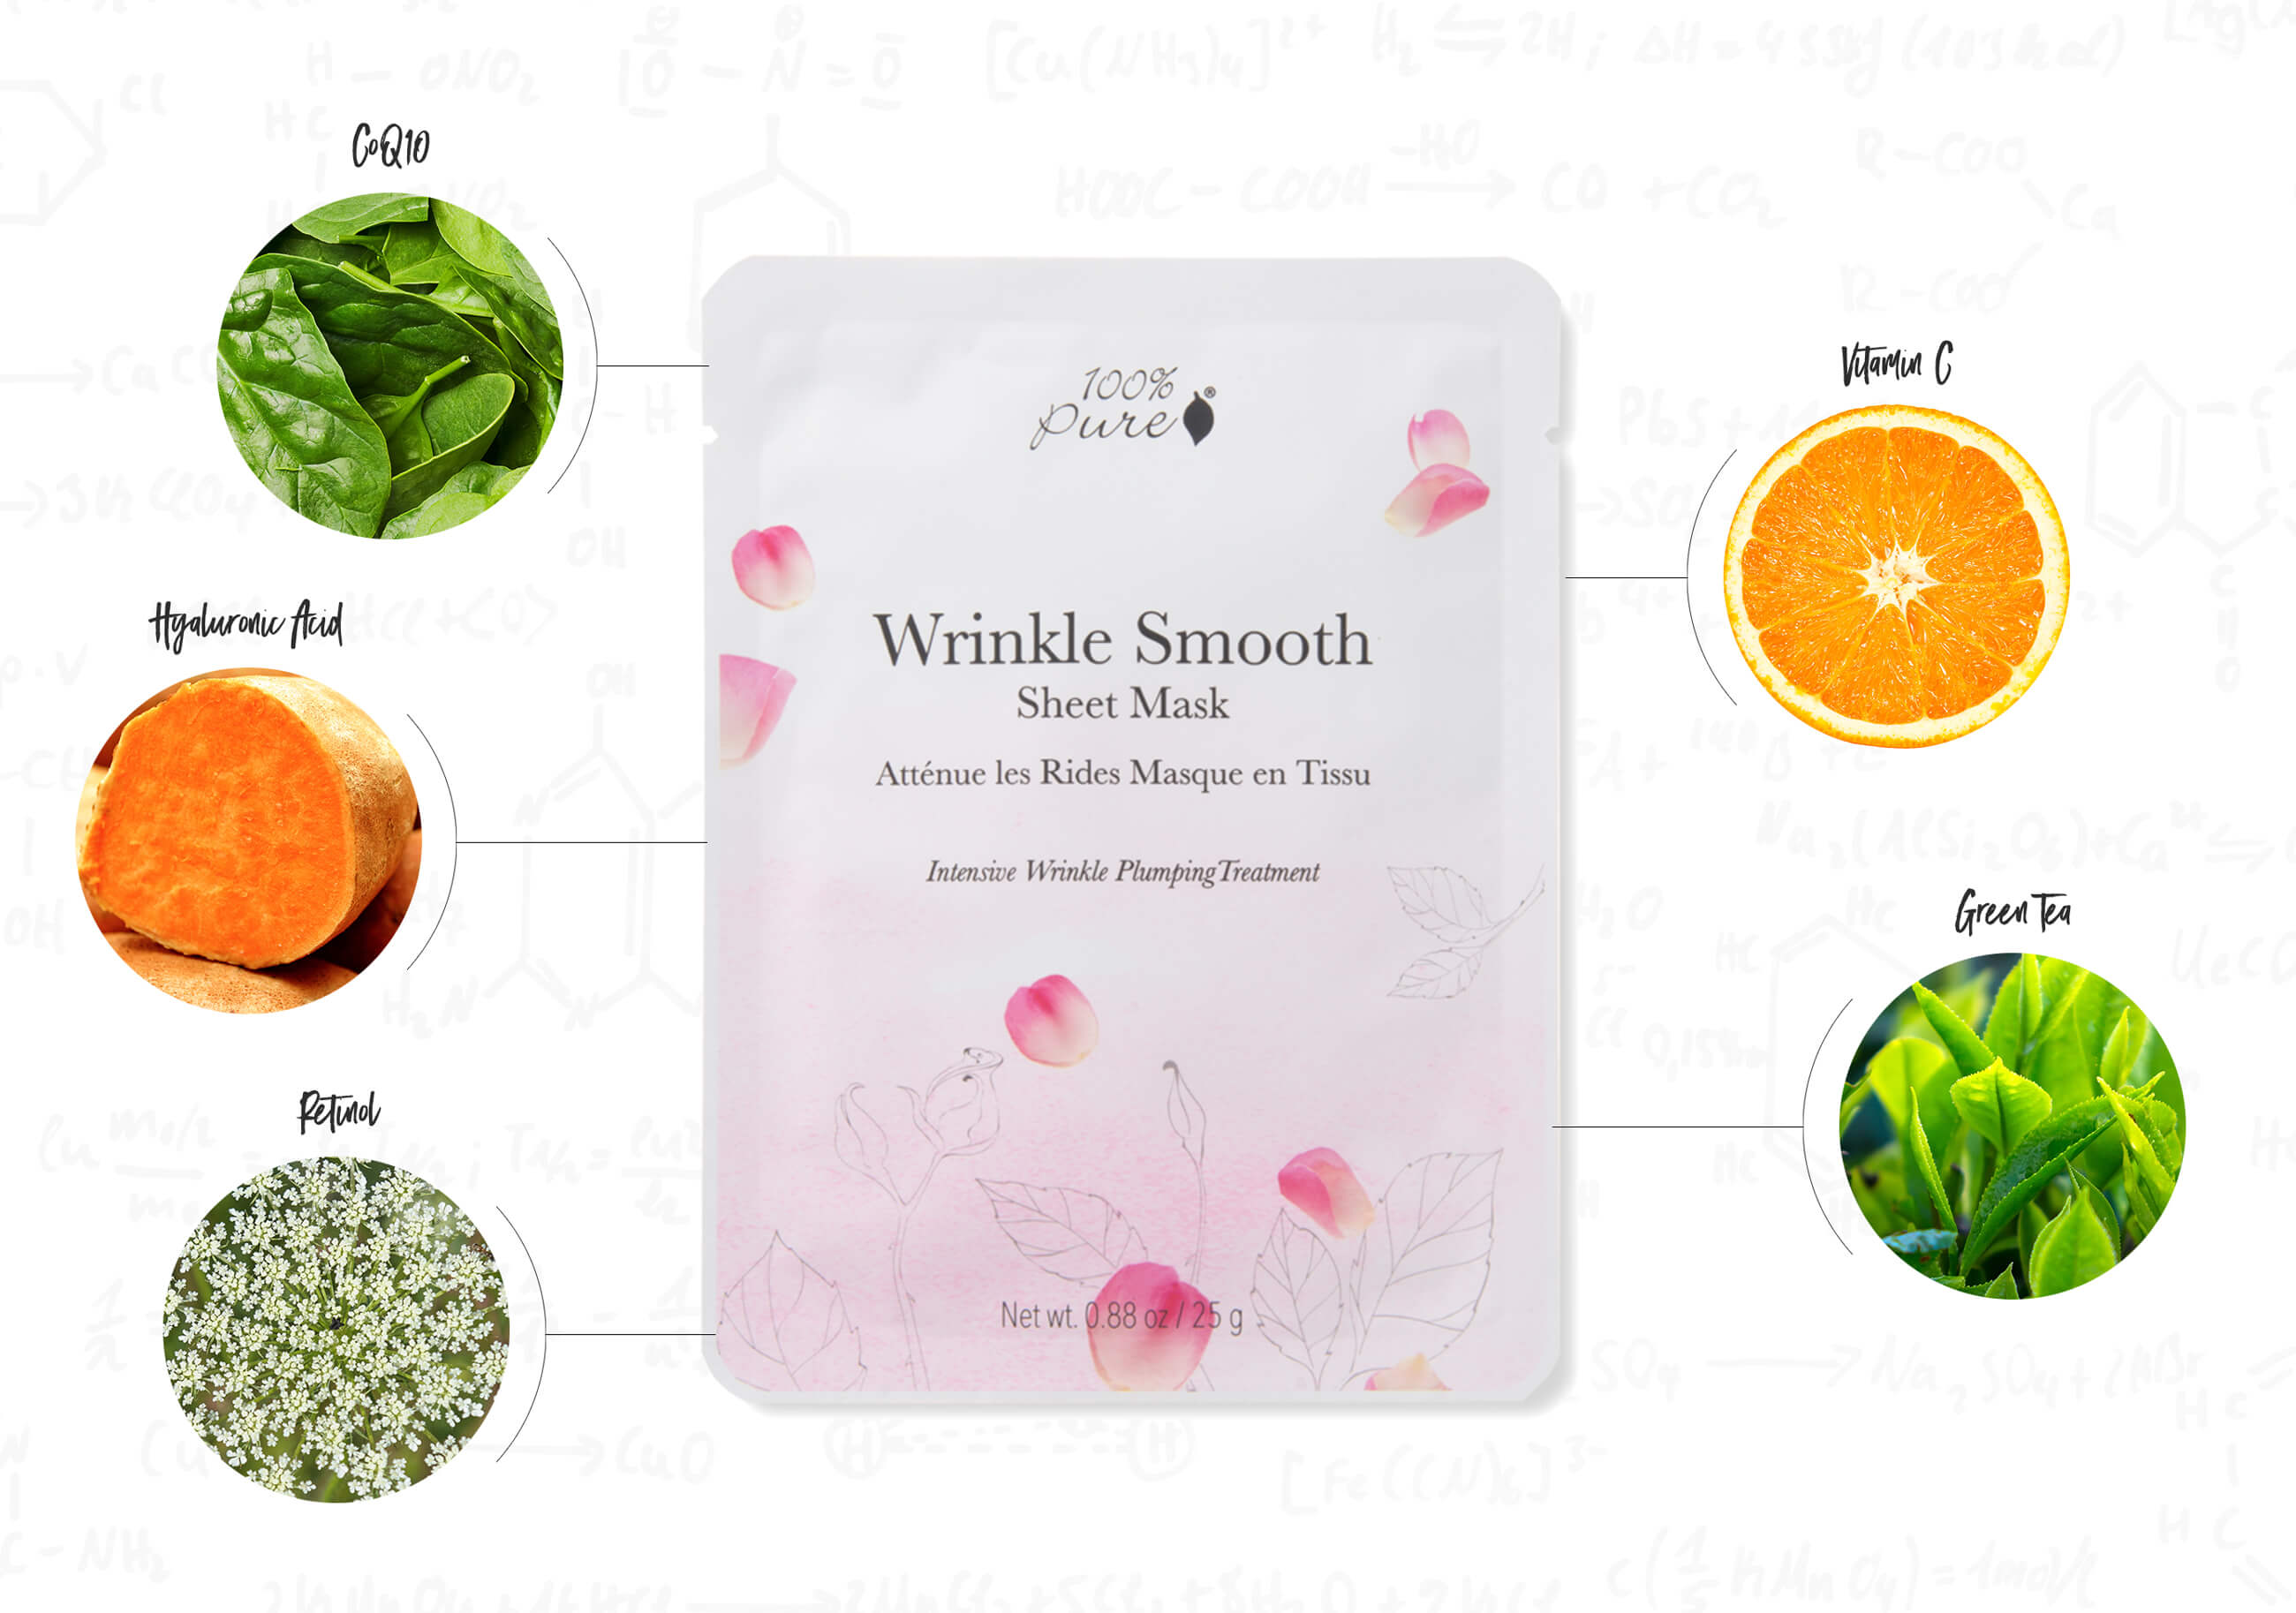 Wrinke Smooth Sheet Mask